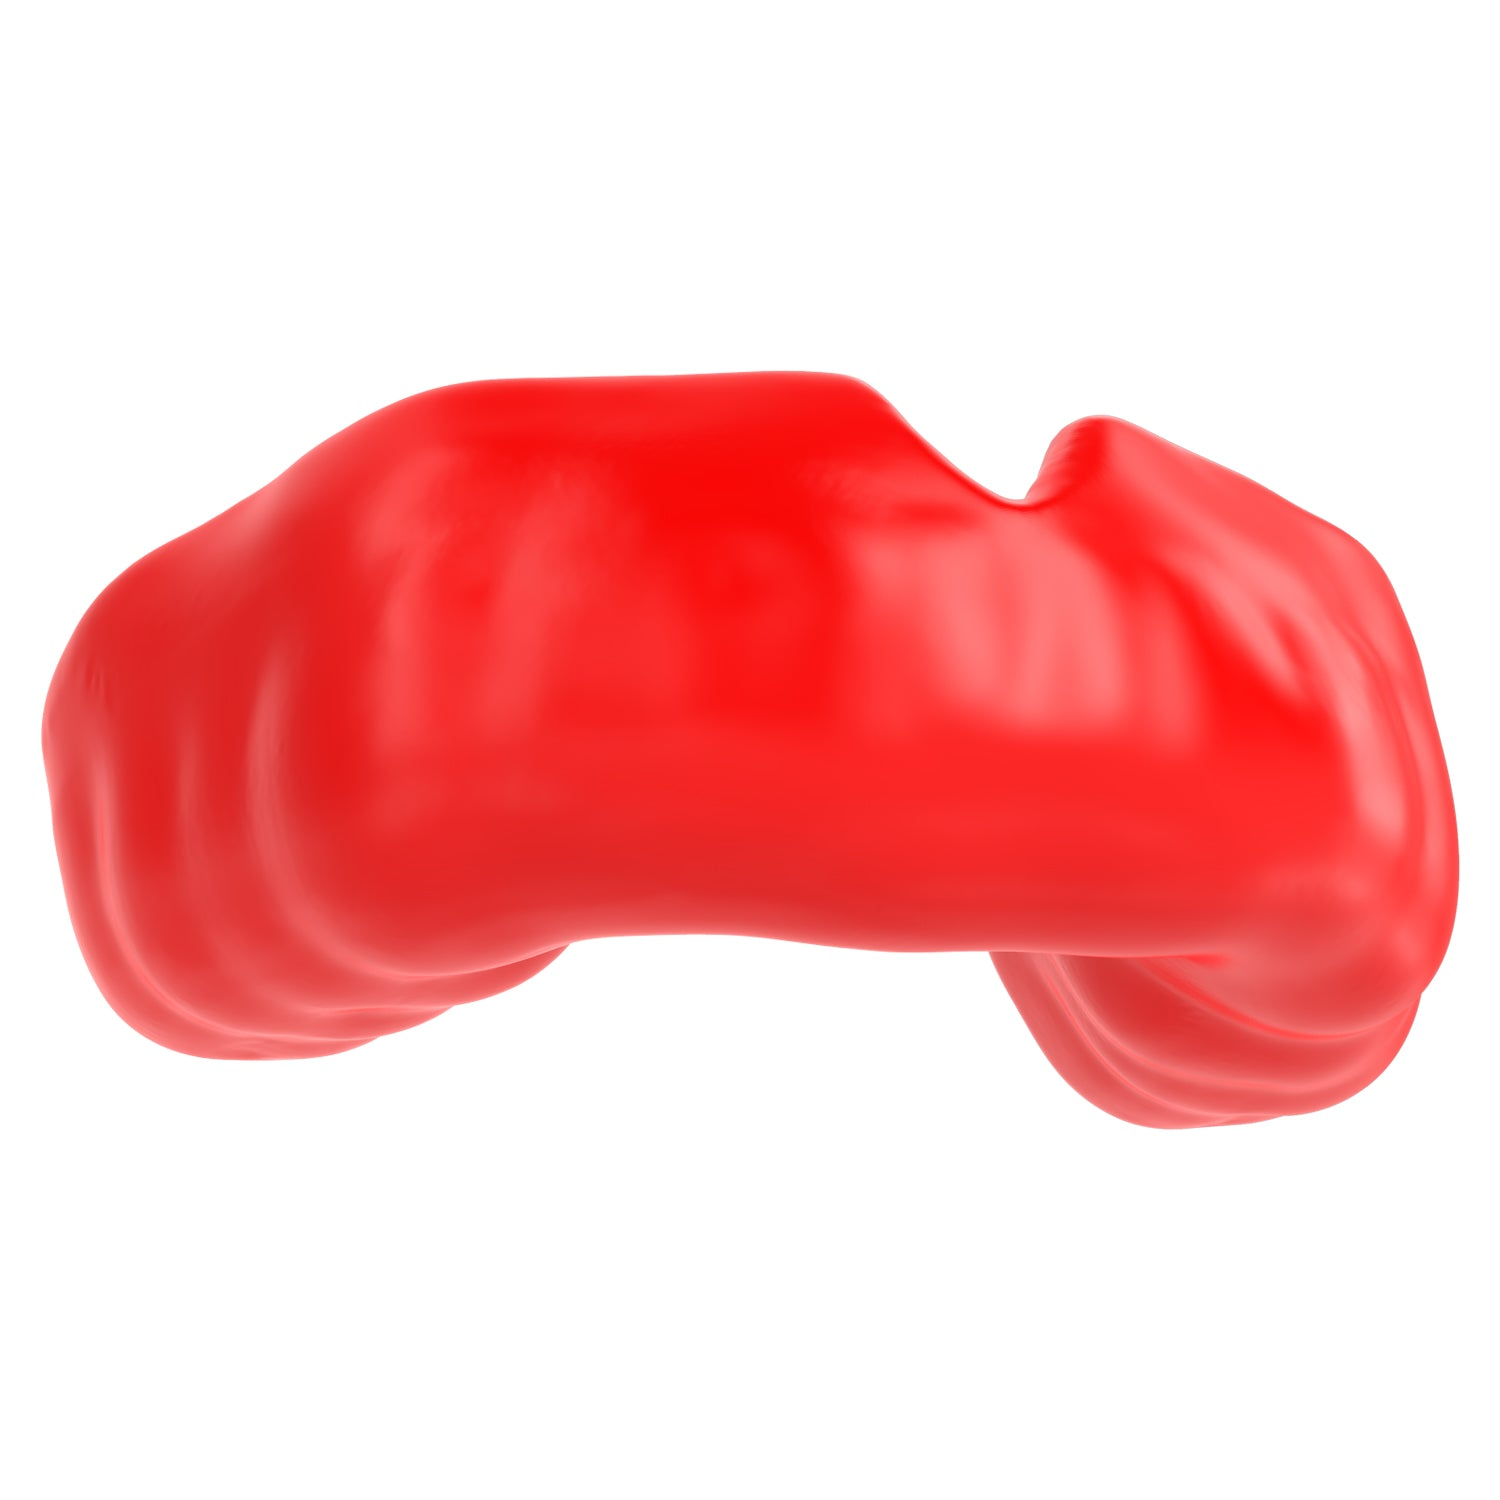 SAFEJAWZ® Custom-fit Mouthguard - Red - SAFEJAWZ gum shield